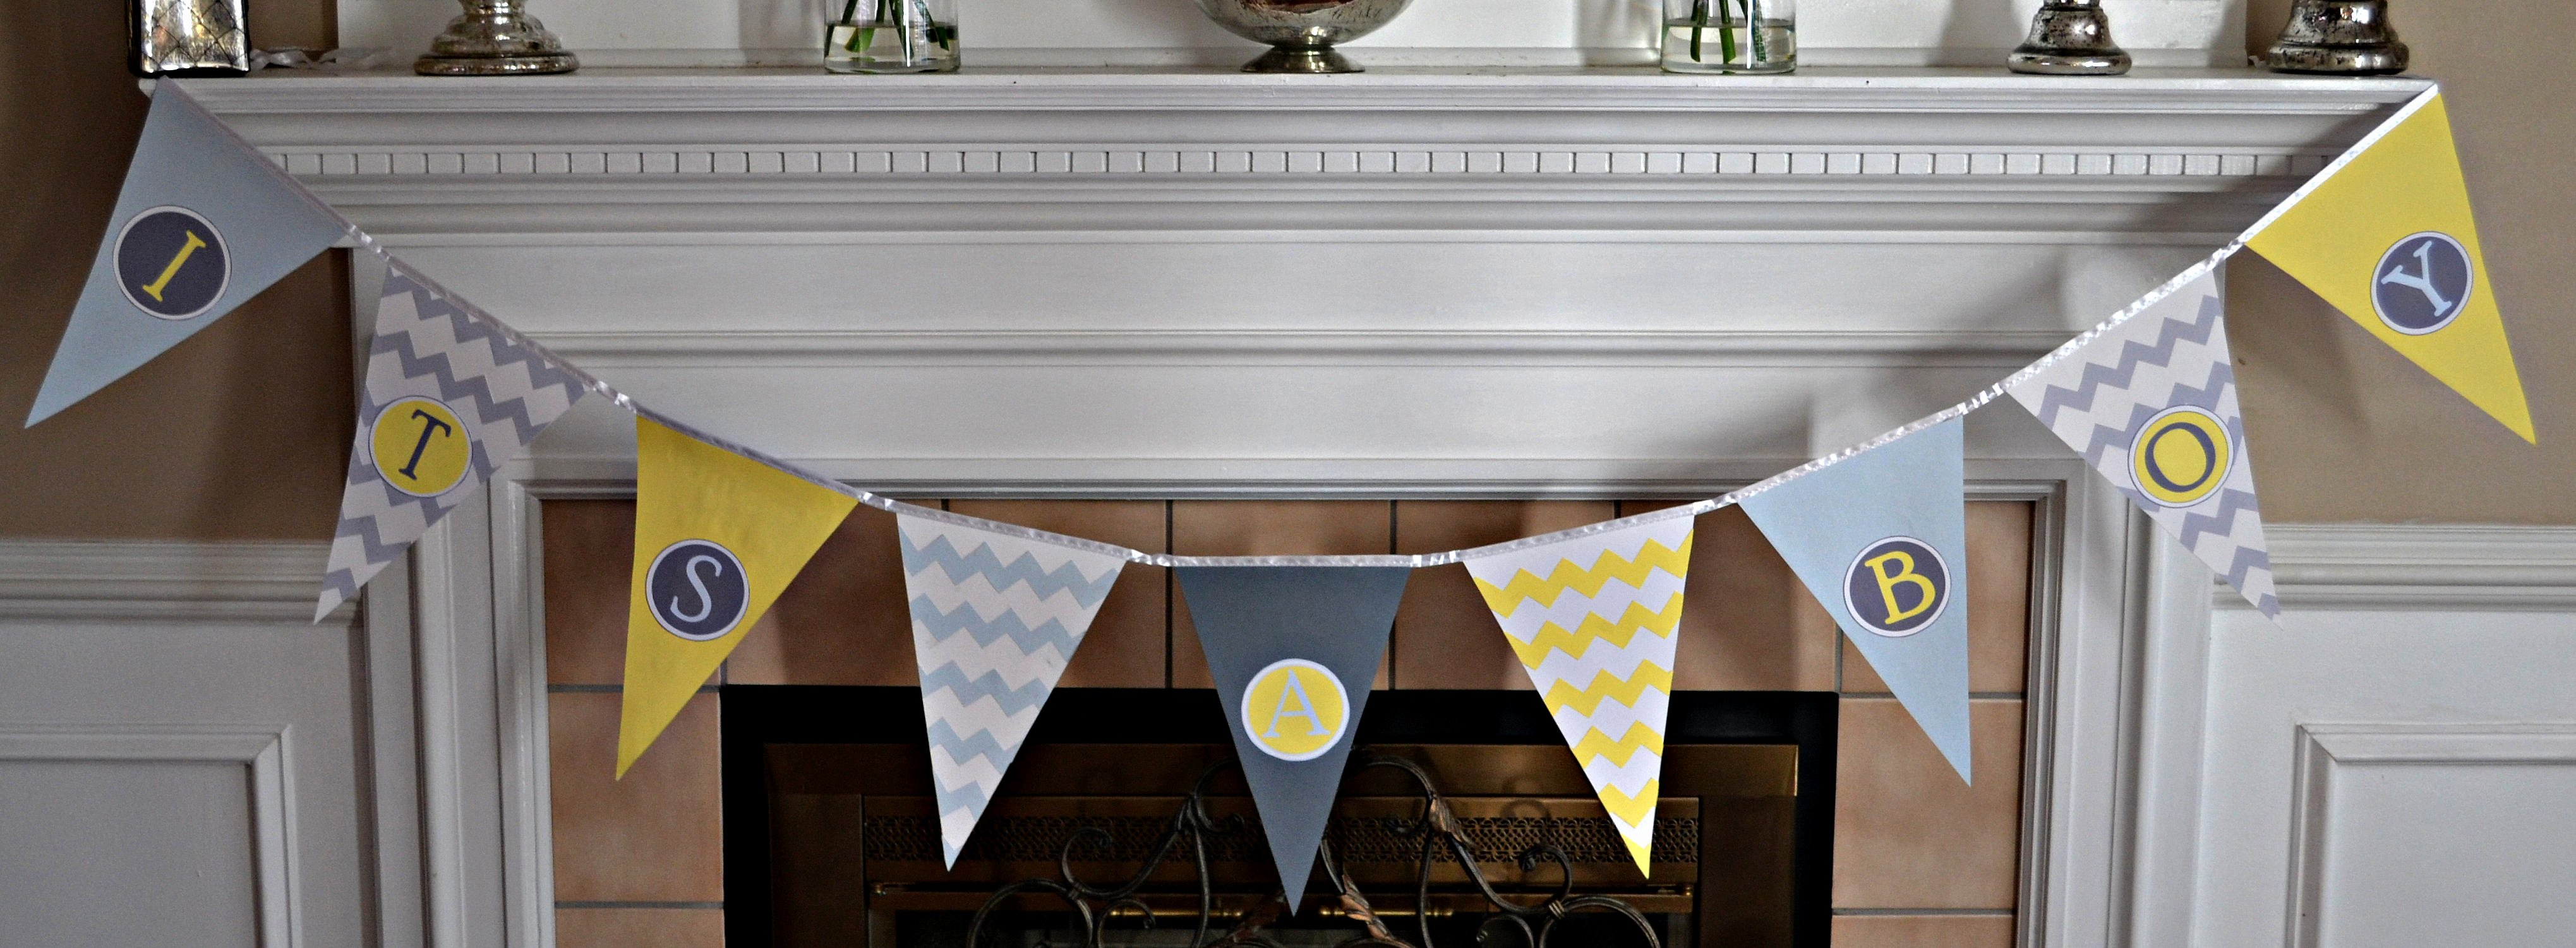 Diy Baby Shower Banner Template Beautiful Baby Shower Pennant Banner Tutorial